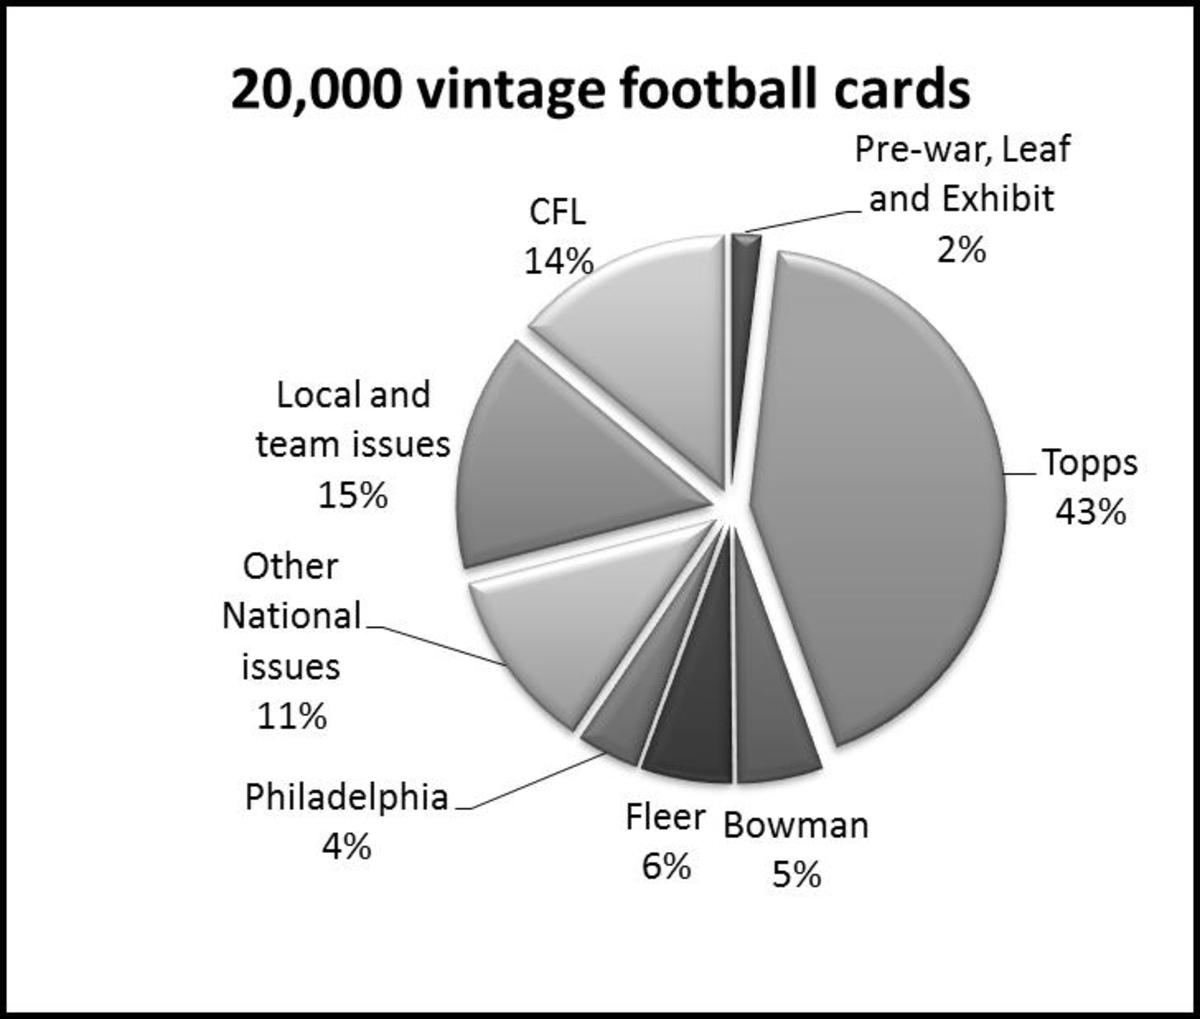 The percentage of the 20,000 vintage football cards is shown for each category.